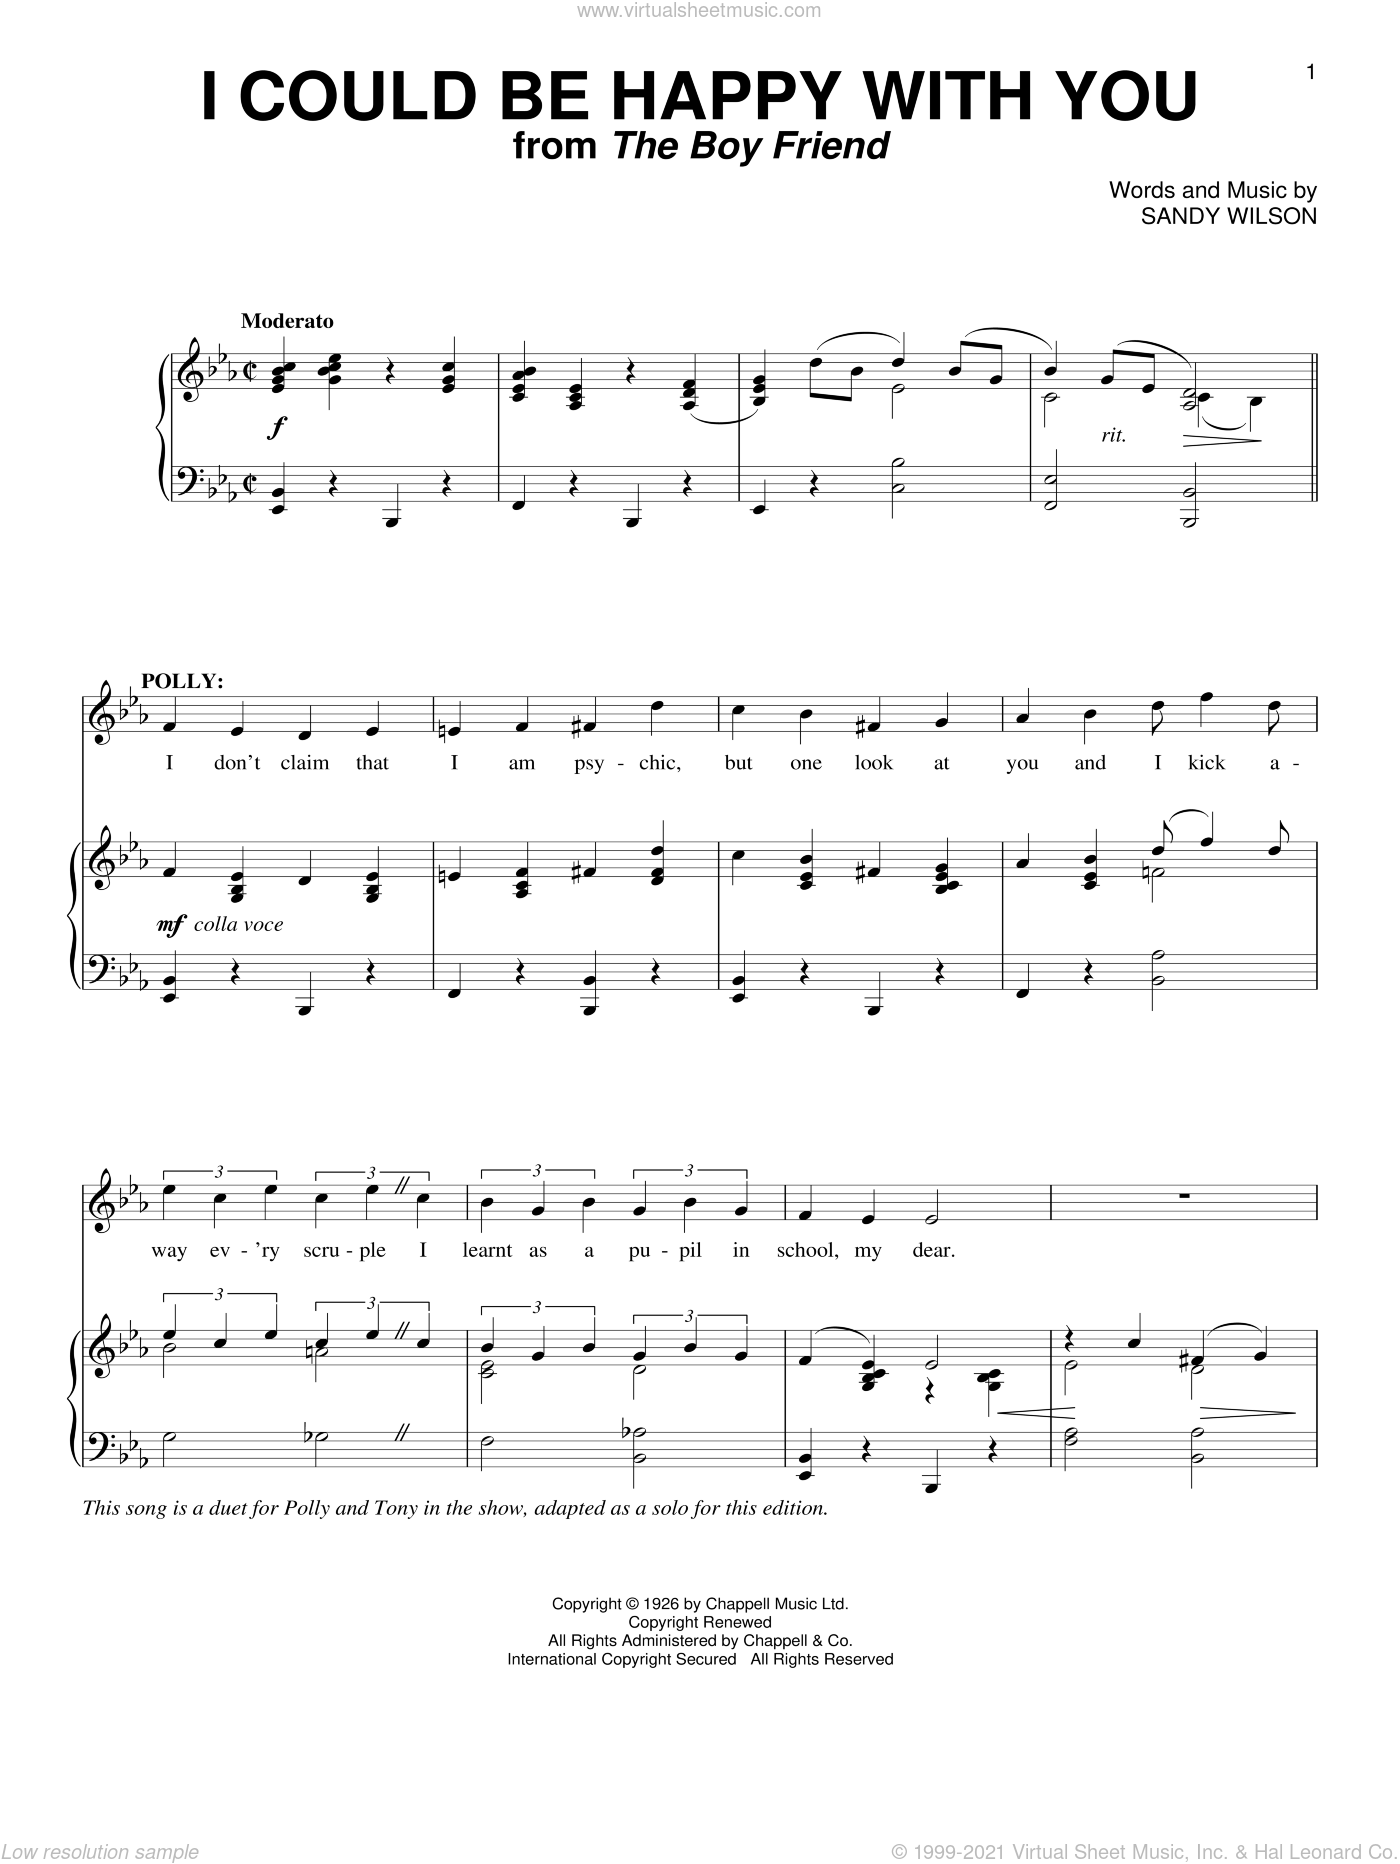 I Could Be Happy With You sheet music for voice and piano by Sandy Wilson, intermediate skill level